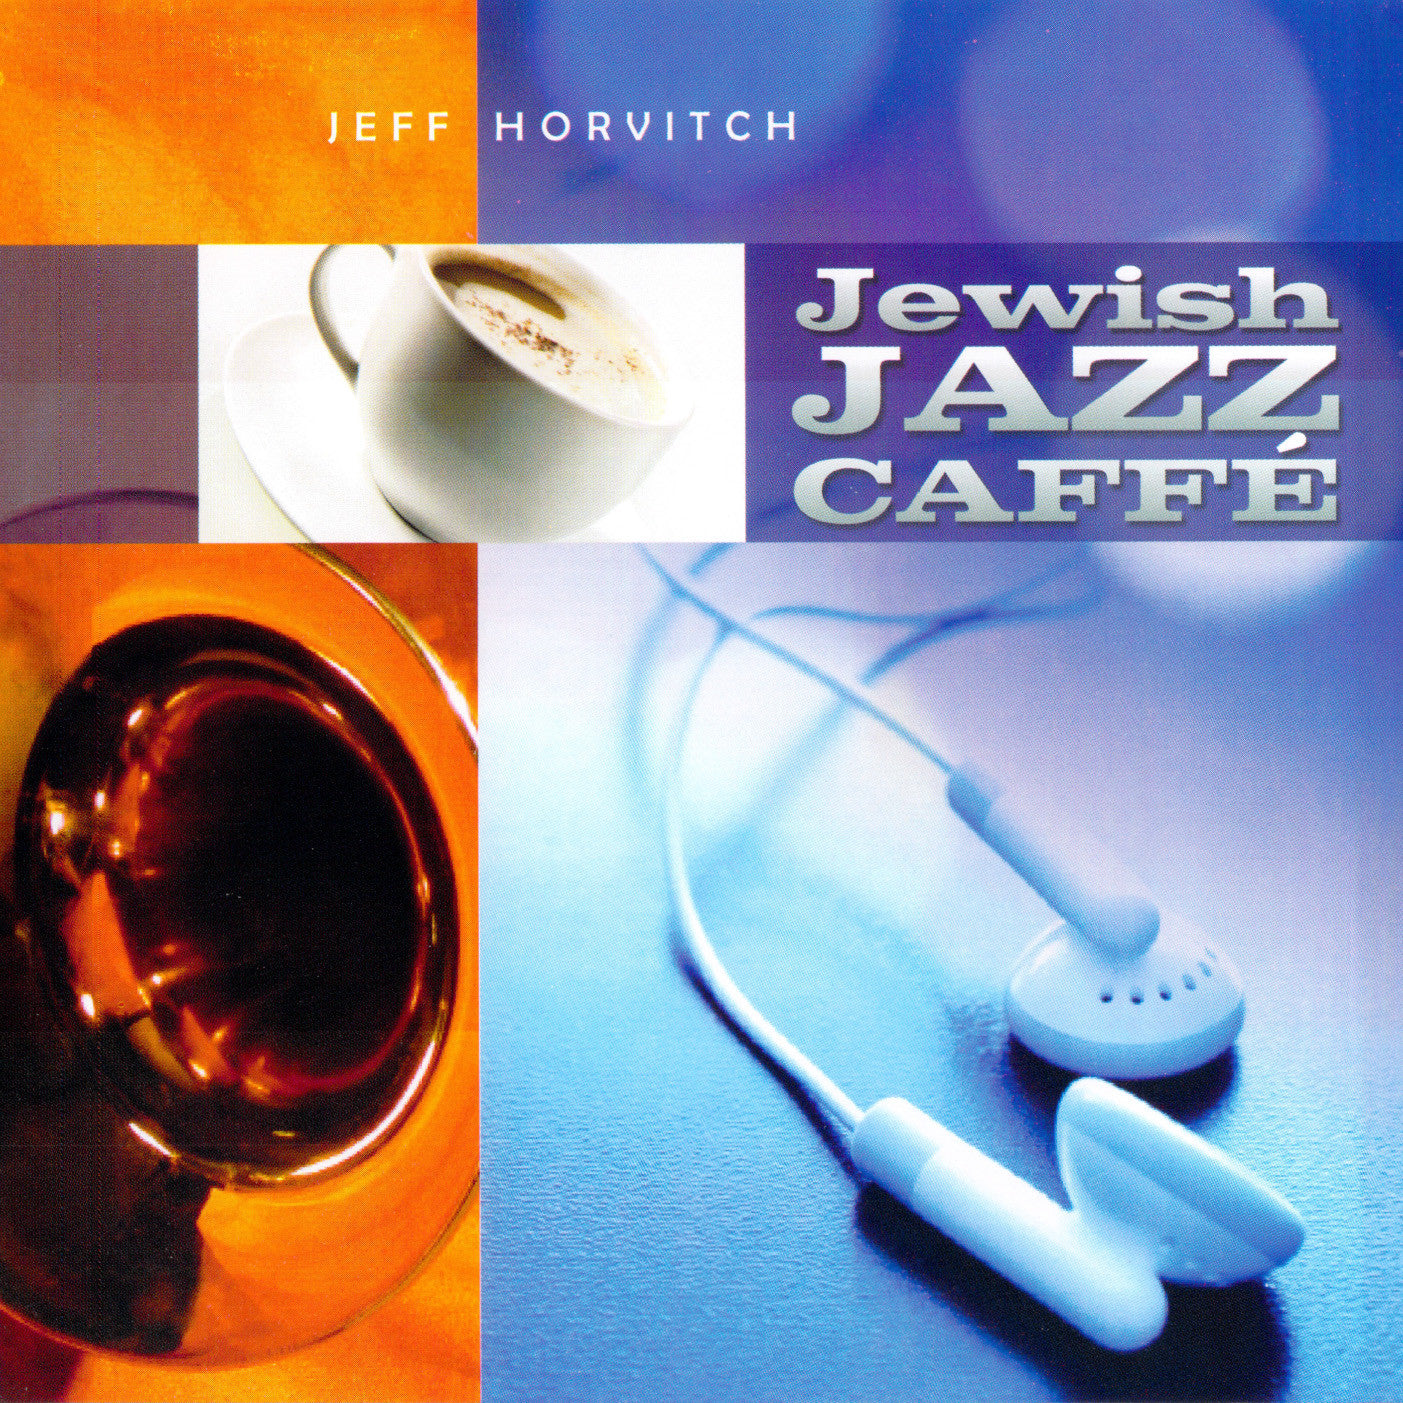 Jeff Horvitch - Jewish Jazz Caffe